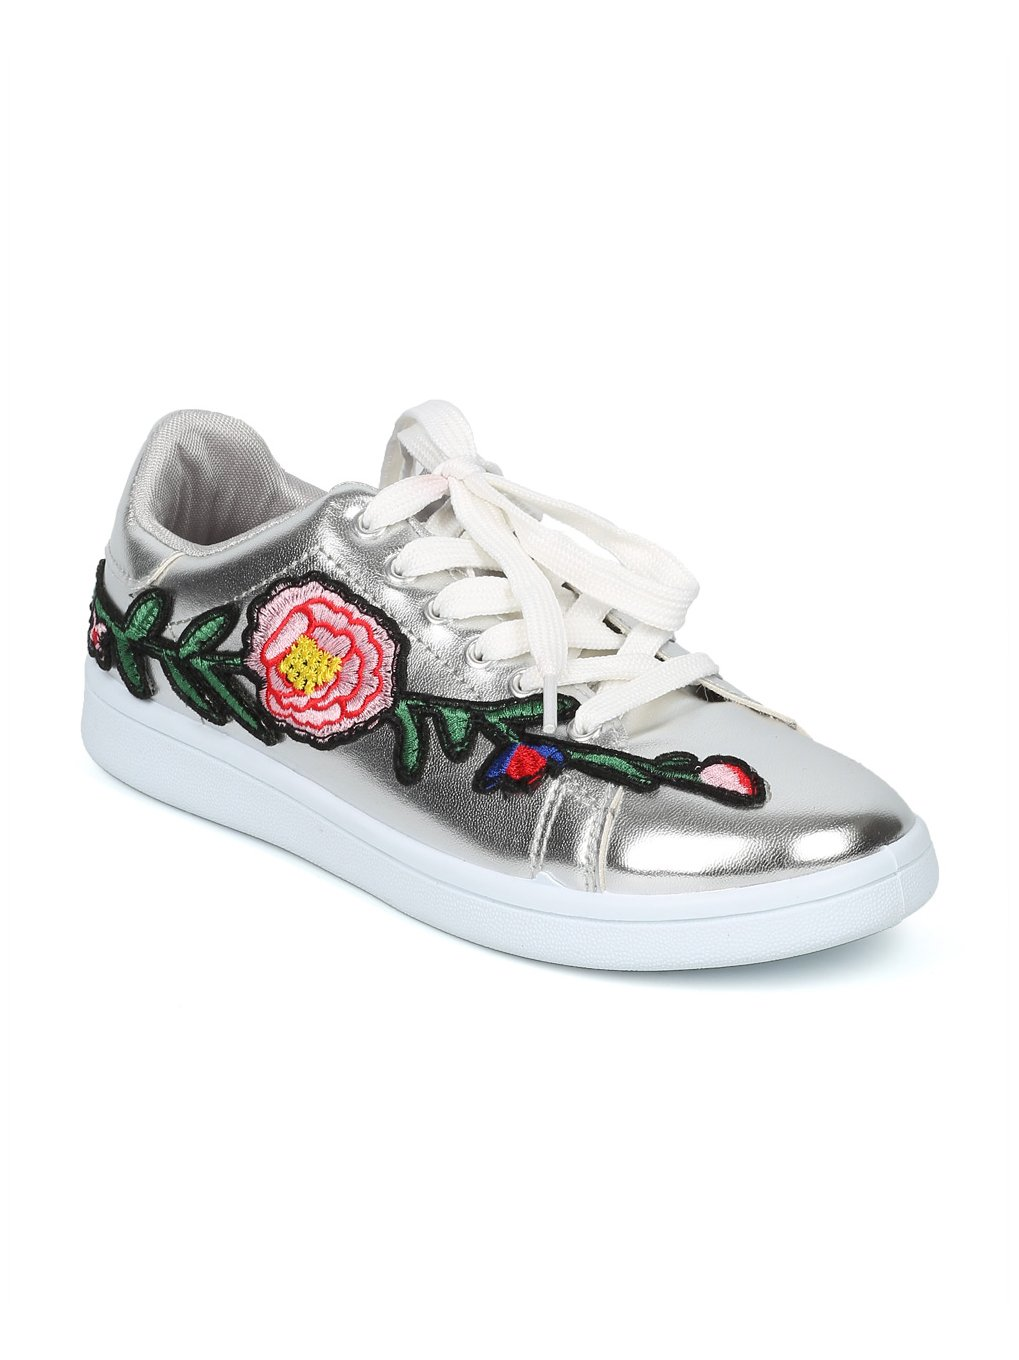 Alrisco Women Lace Up Floral Embroidered Patch Low Top Sneaker HF82 - Silver Metallic (Size: 6.0)